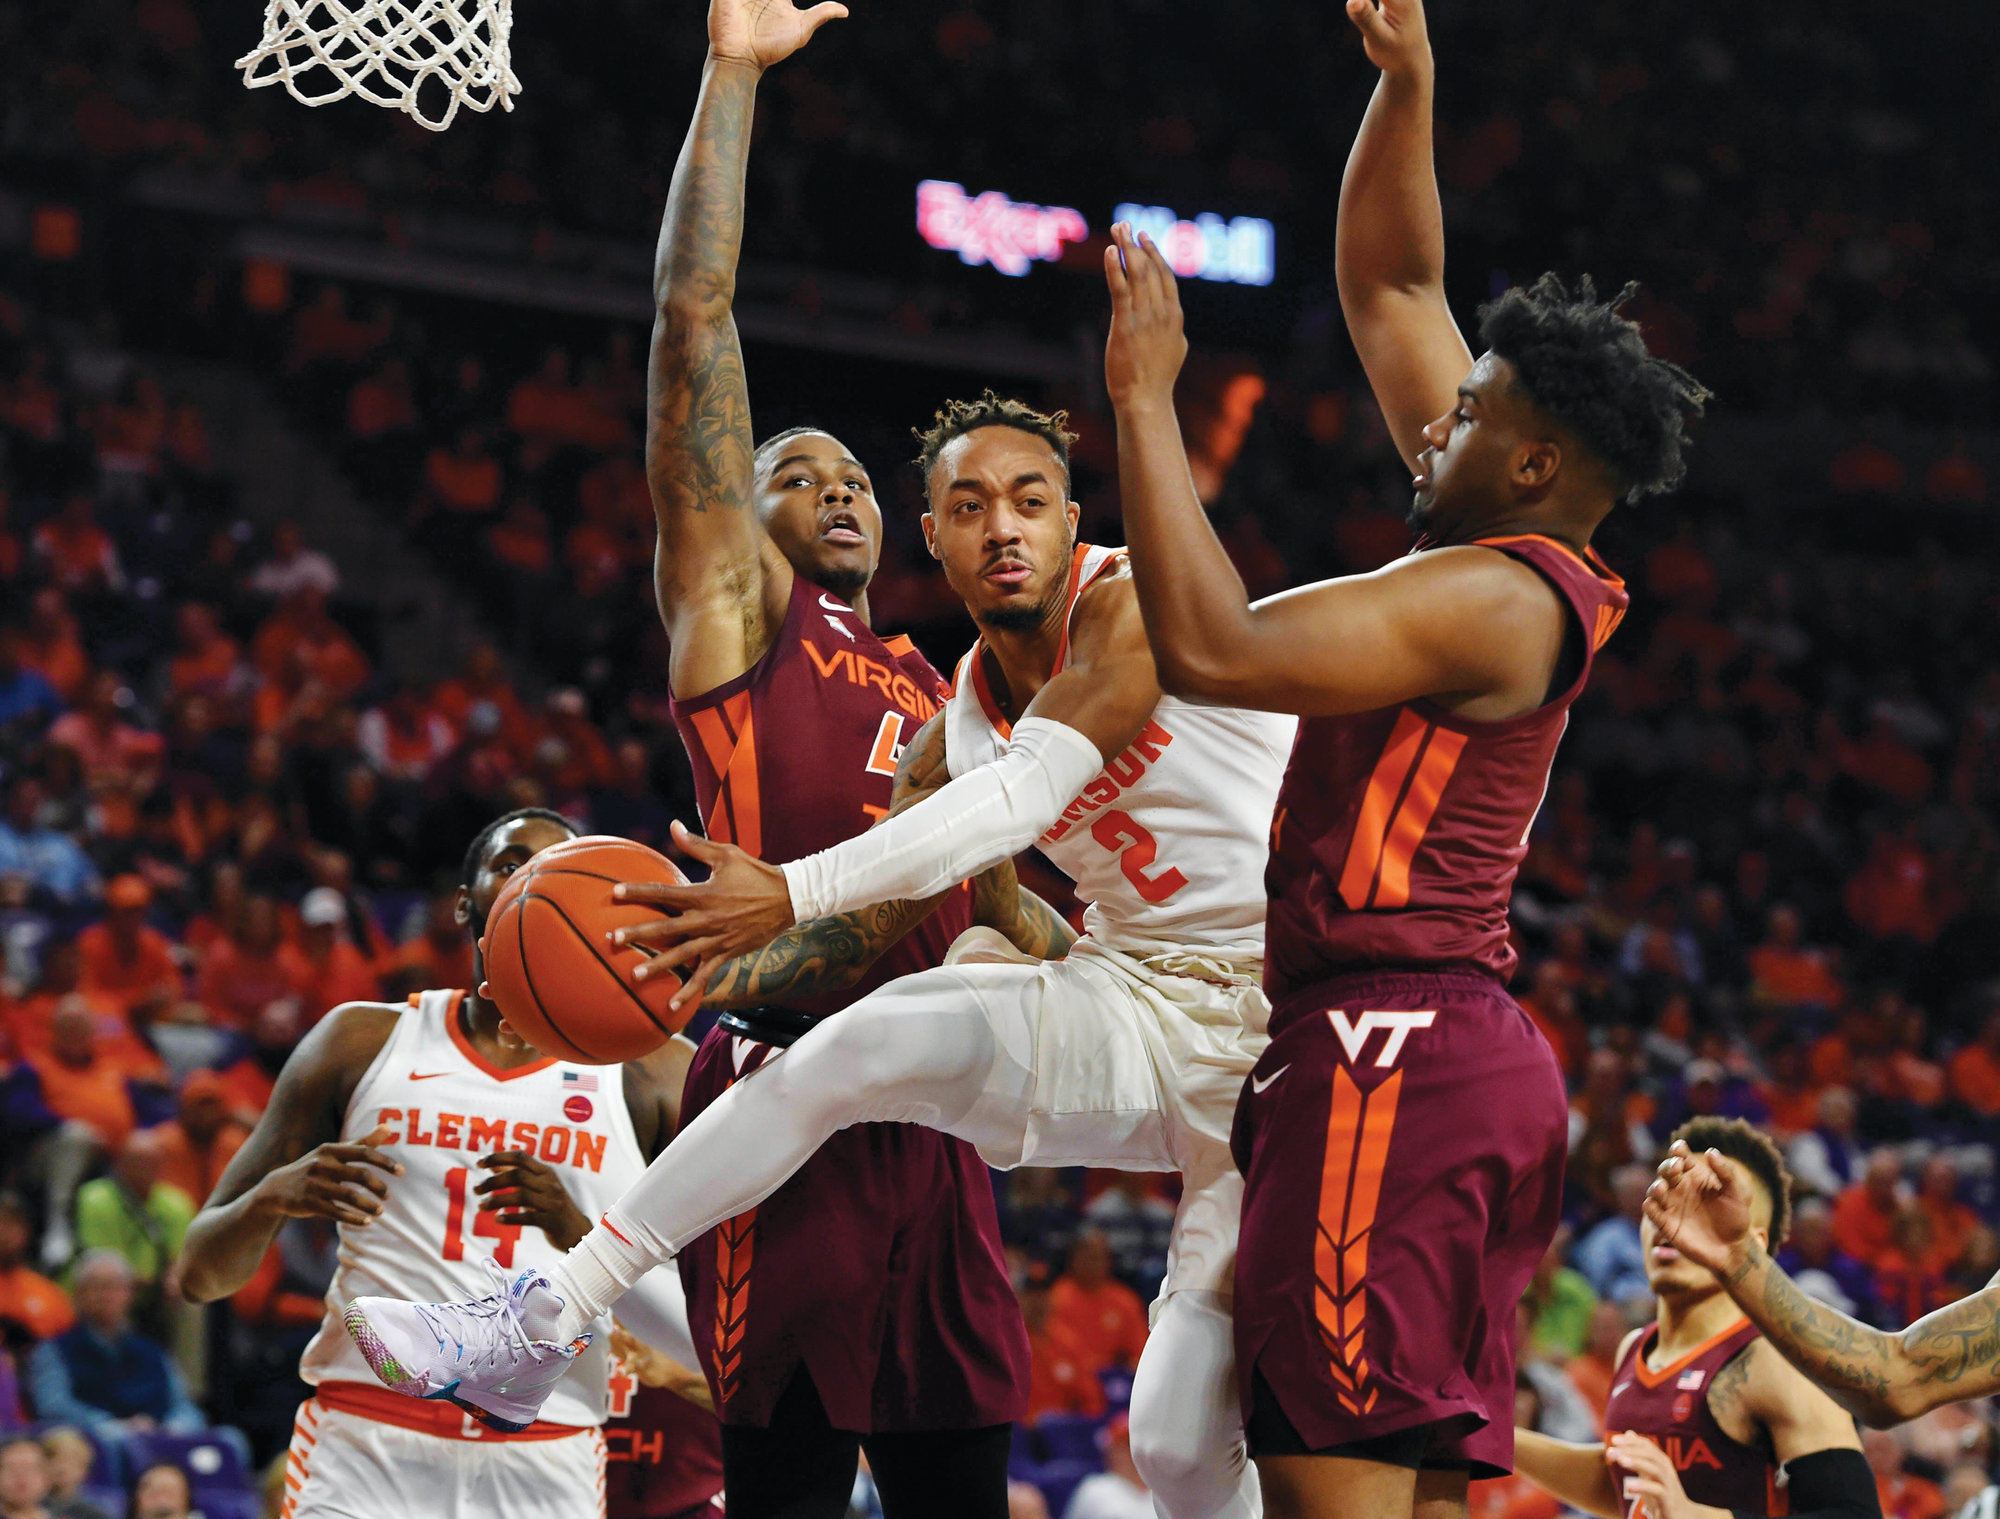 Clemson's Marcquise Reed (2) tries to pass while being defended by Virginia Tech's Isaiah Wilkins, right, and Ty Outlaw during the Tigers' 59-51 victory over the No. 11 Hokies on Saturday in Clemson.